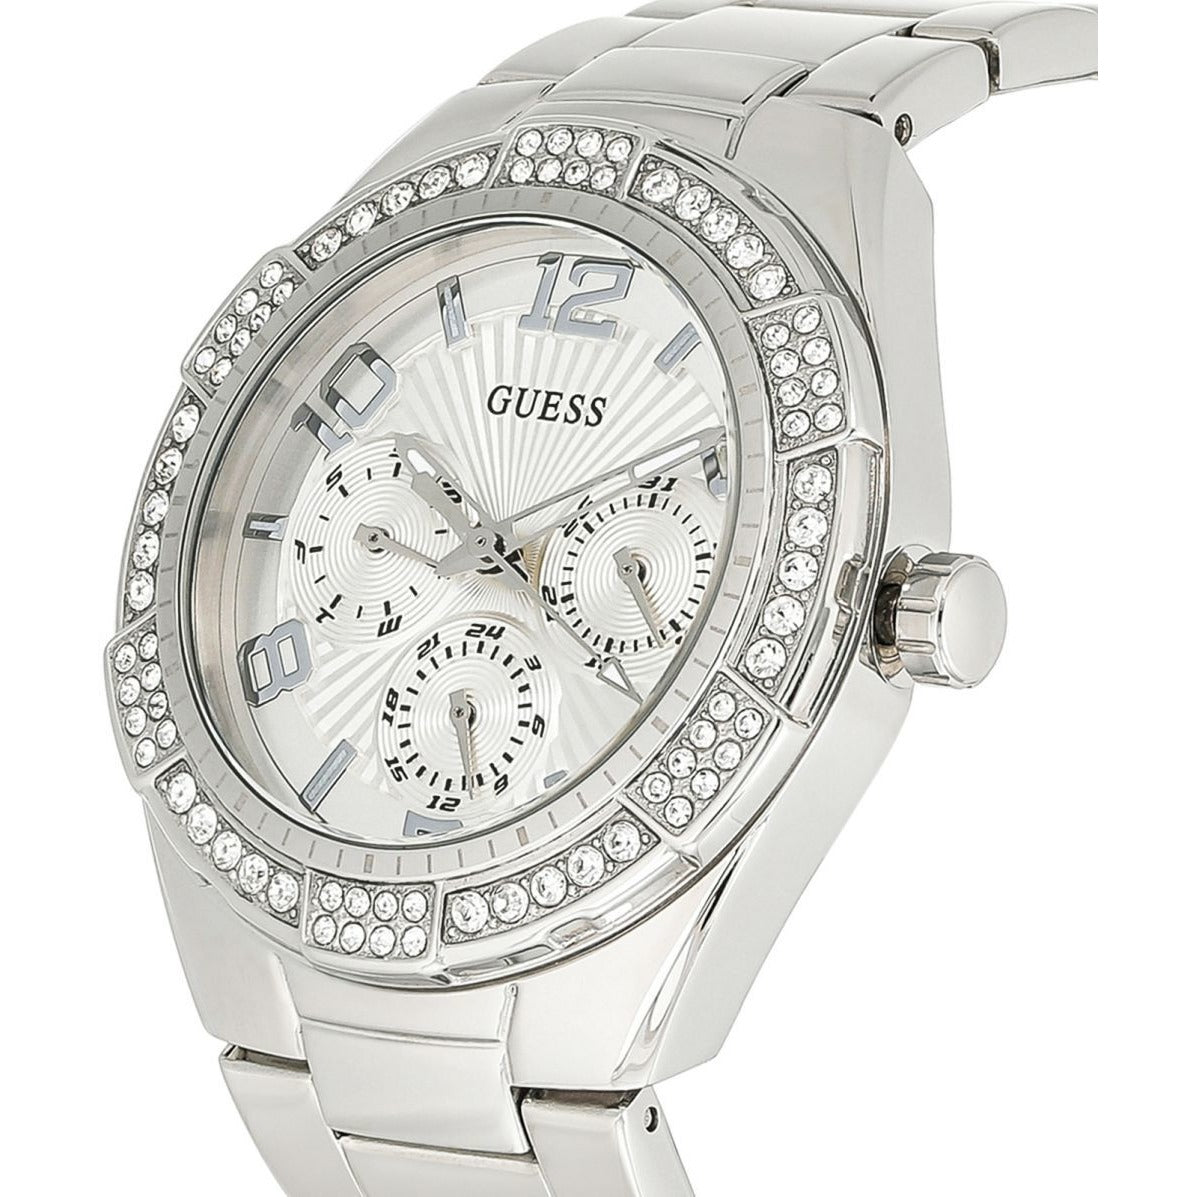 Guess Women's Silver Dial Stainless Steel Band Watch - U0729L1